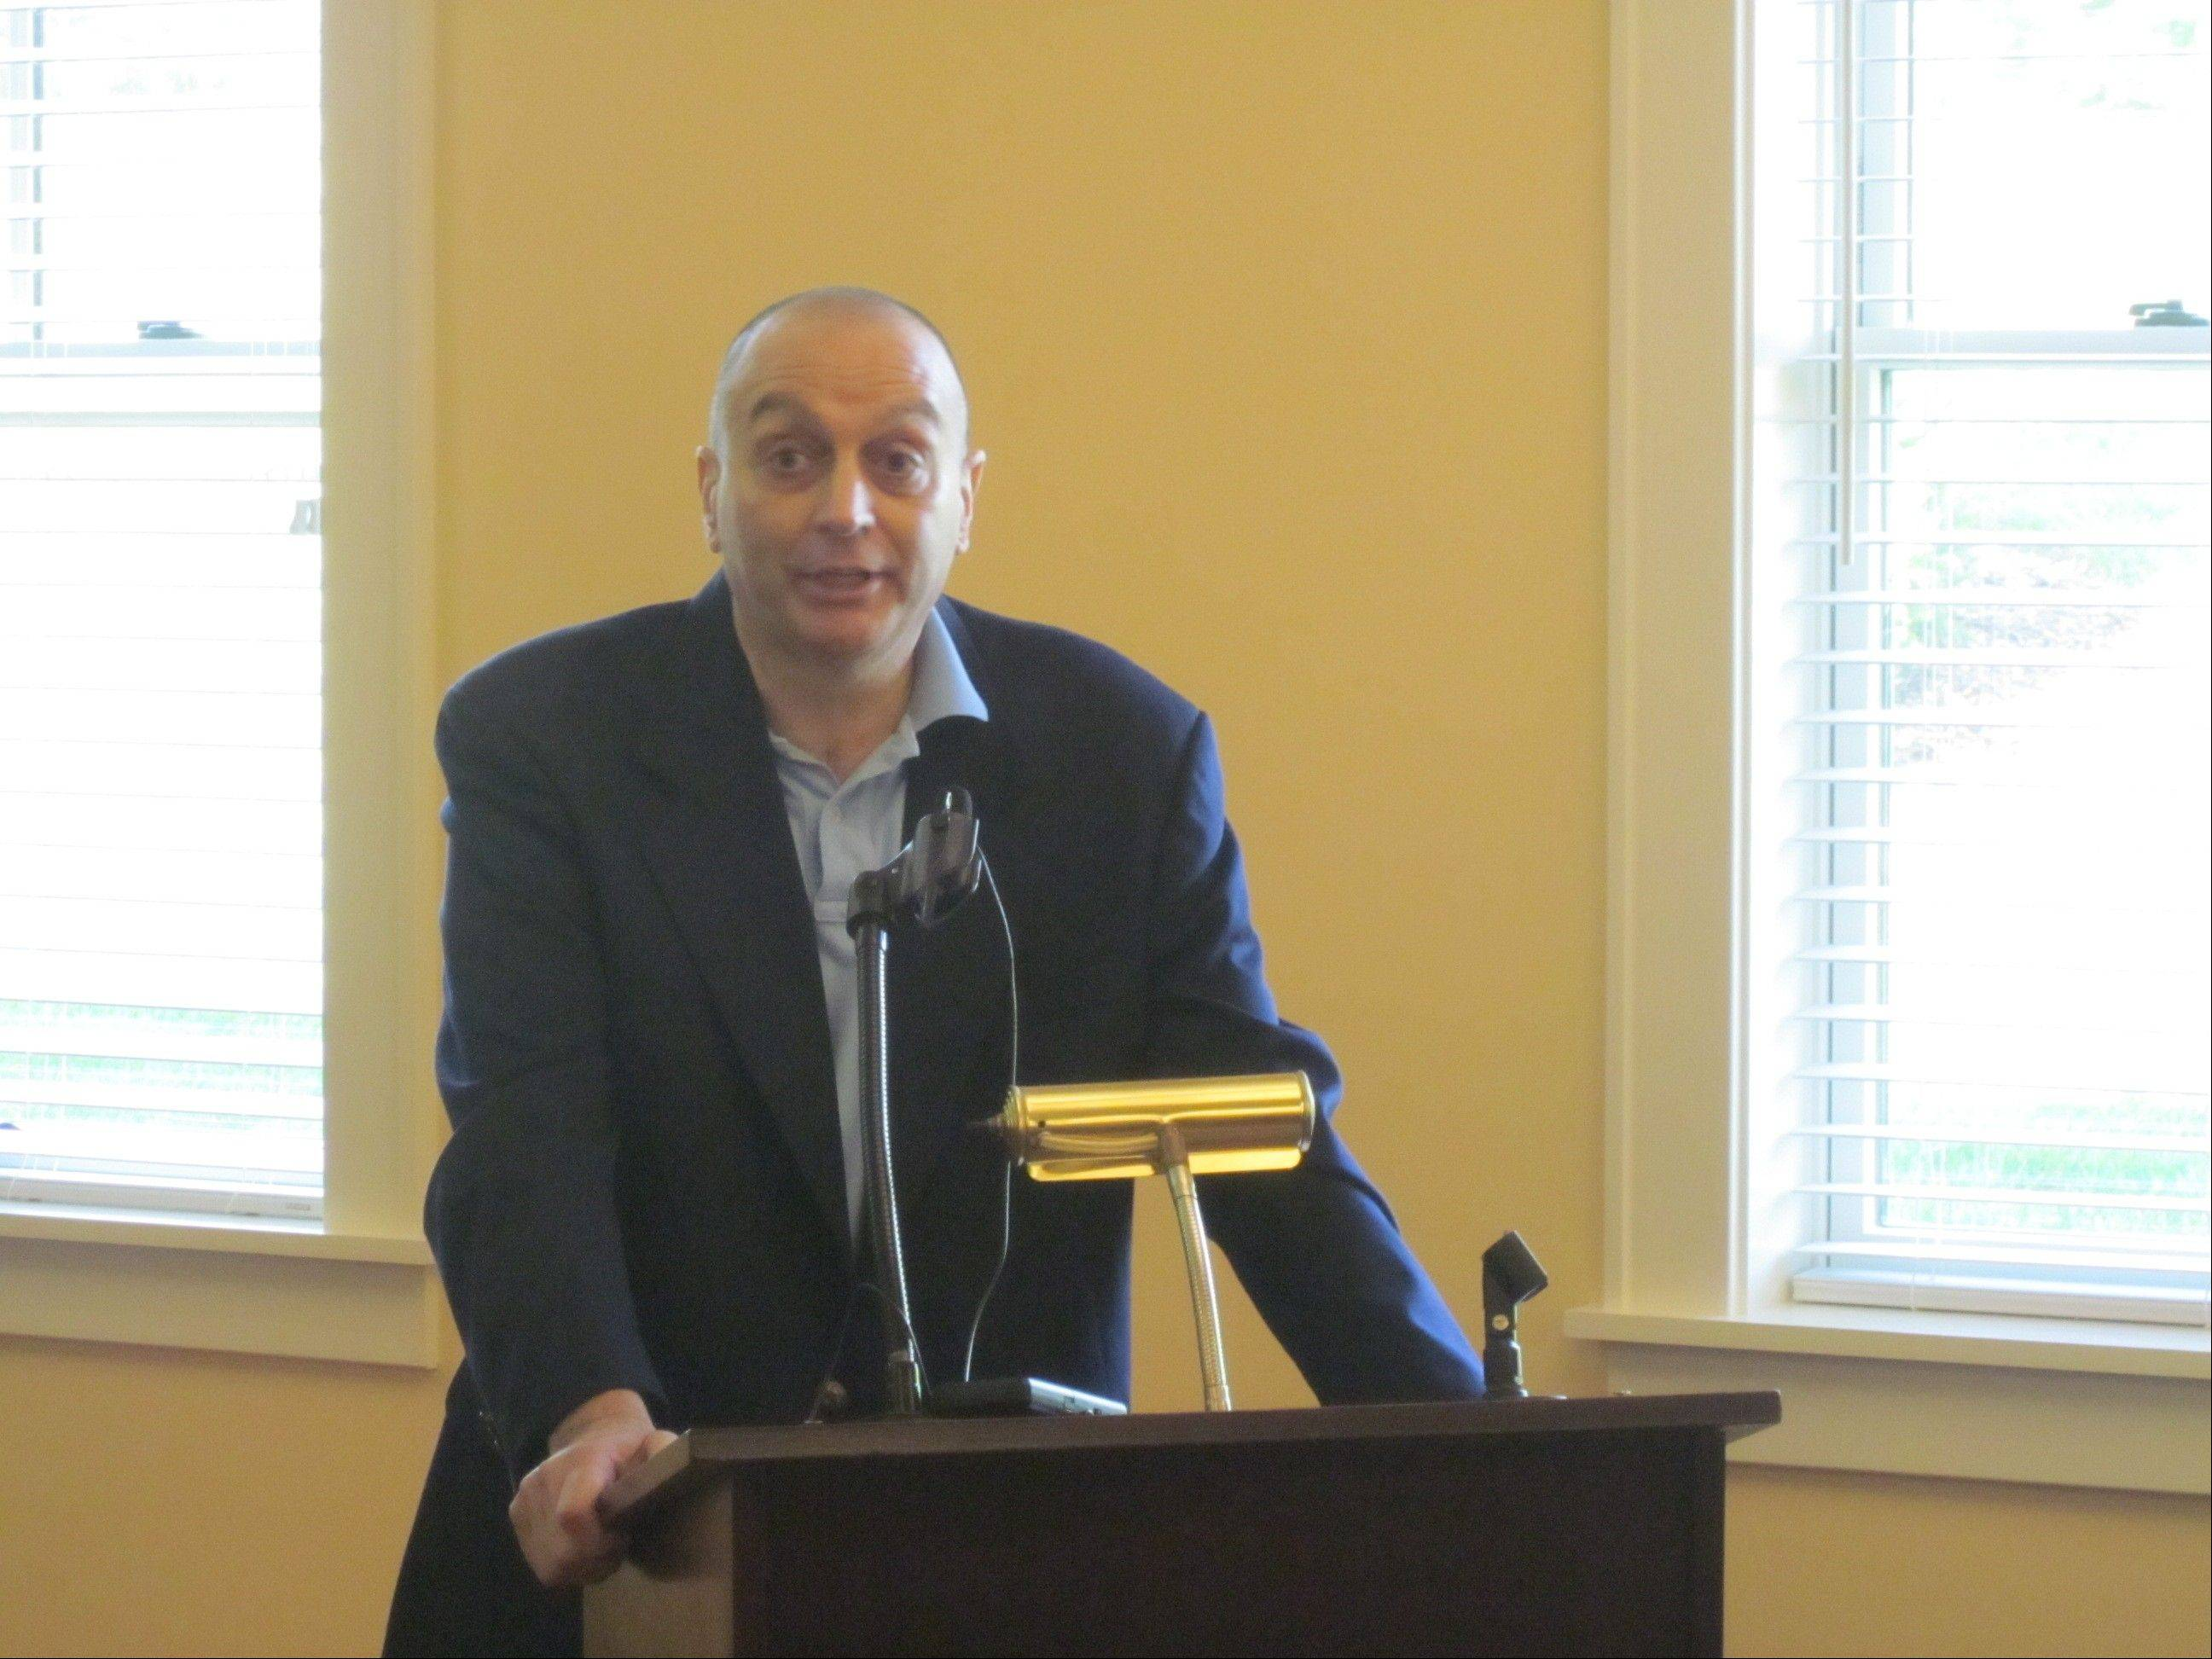 Geneva Alderman Ralph Dantino, a client of the LivingWell Cancer Resource Center, speaks at the grand opening of its new facility in May 2012.